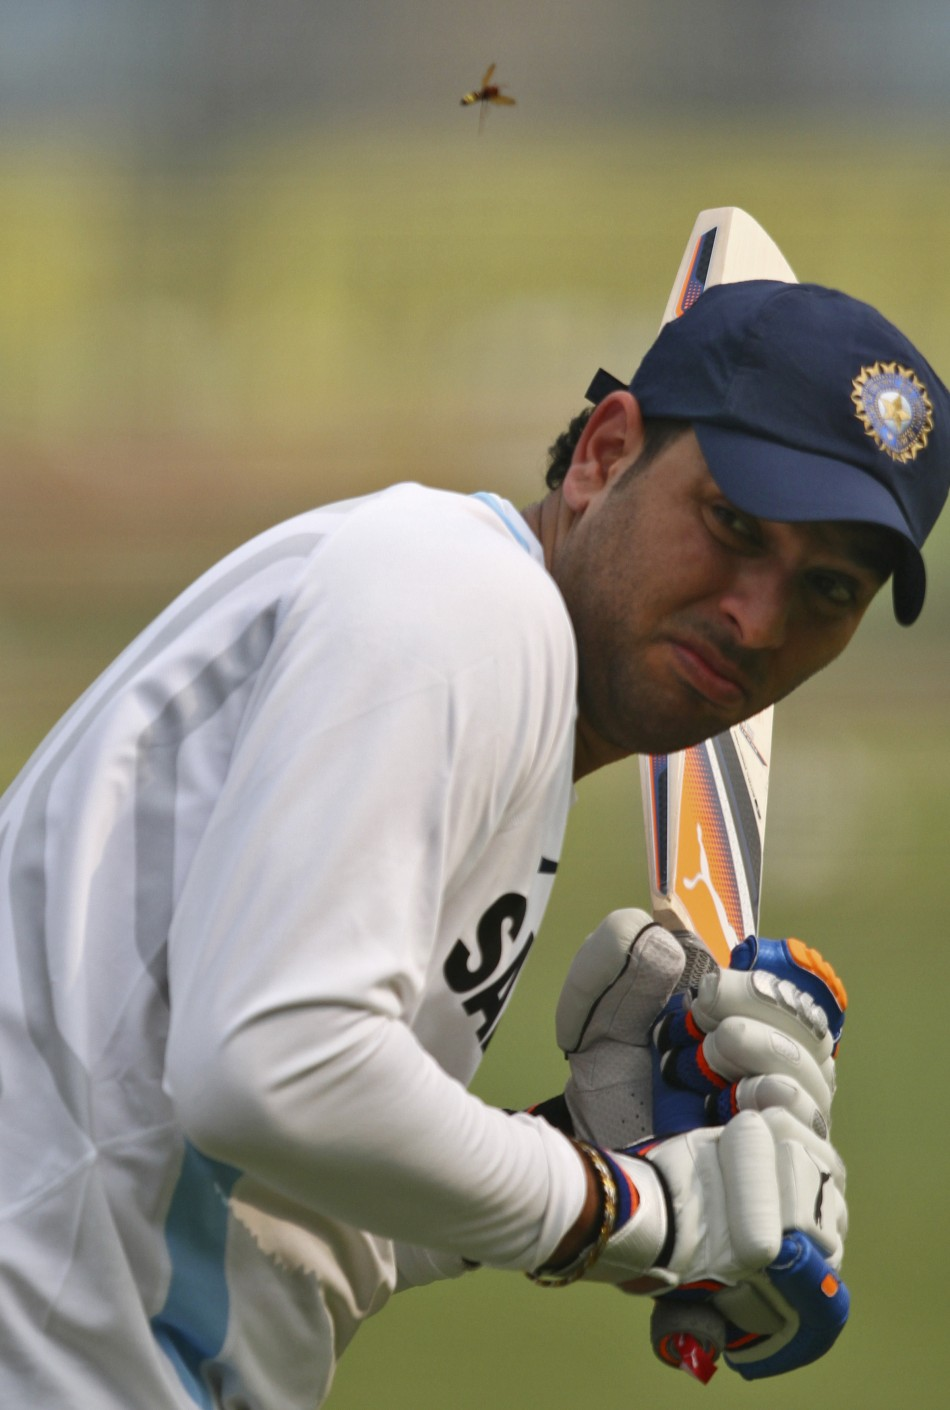 Yuvraj Singh (Cricketer) in the past